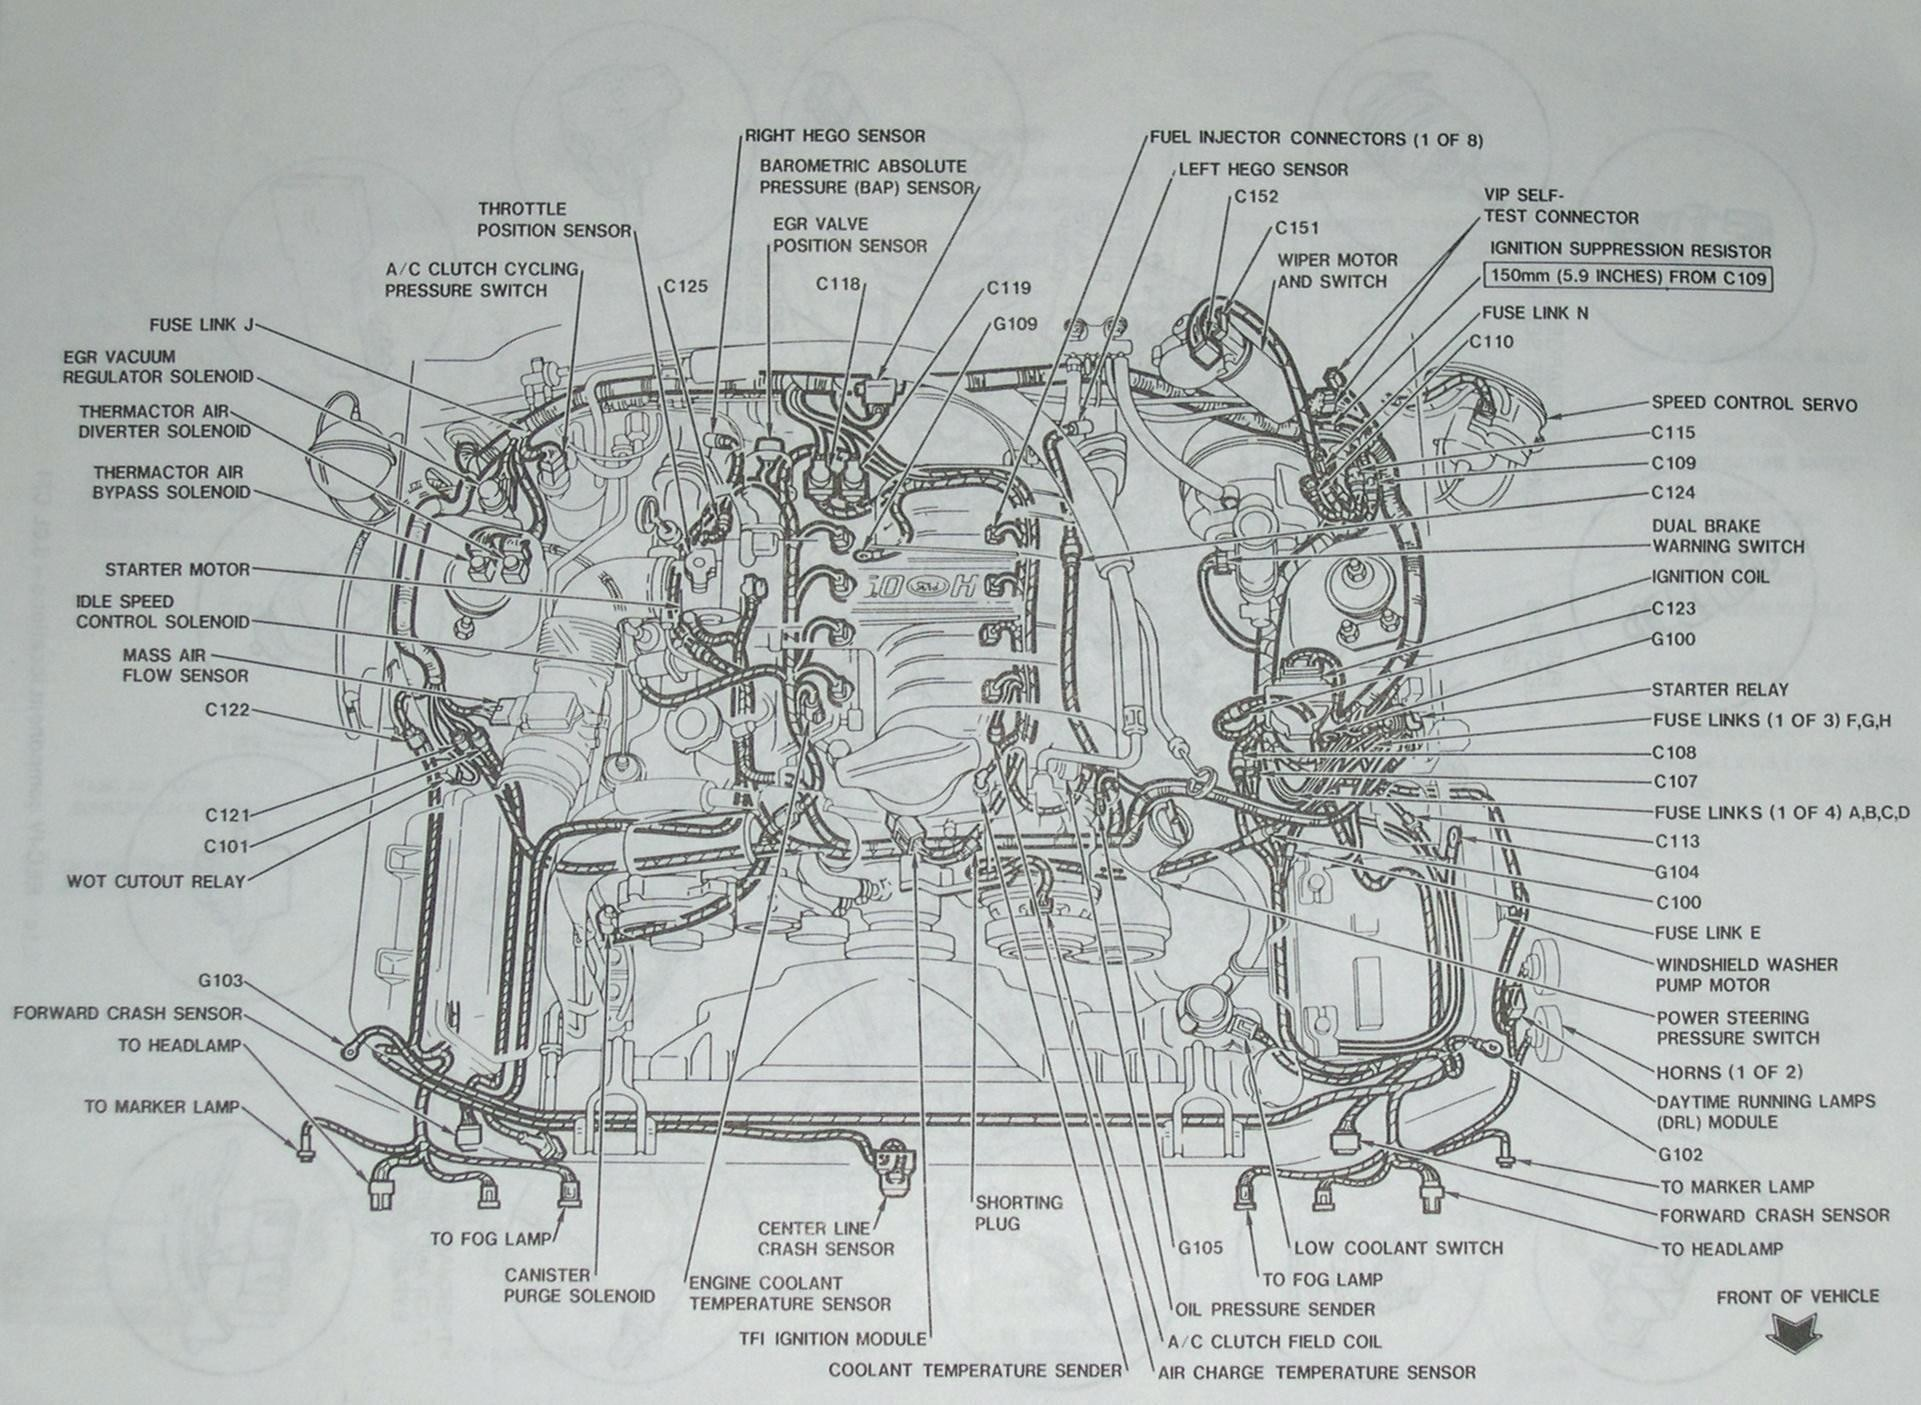 1996 Ford Mustang Gt Wiring Diagram Start Building A Convertible Top 1966 Electrical Auto Rh Mit Edu Uk Bitoku Me For 95 Radio